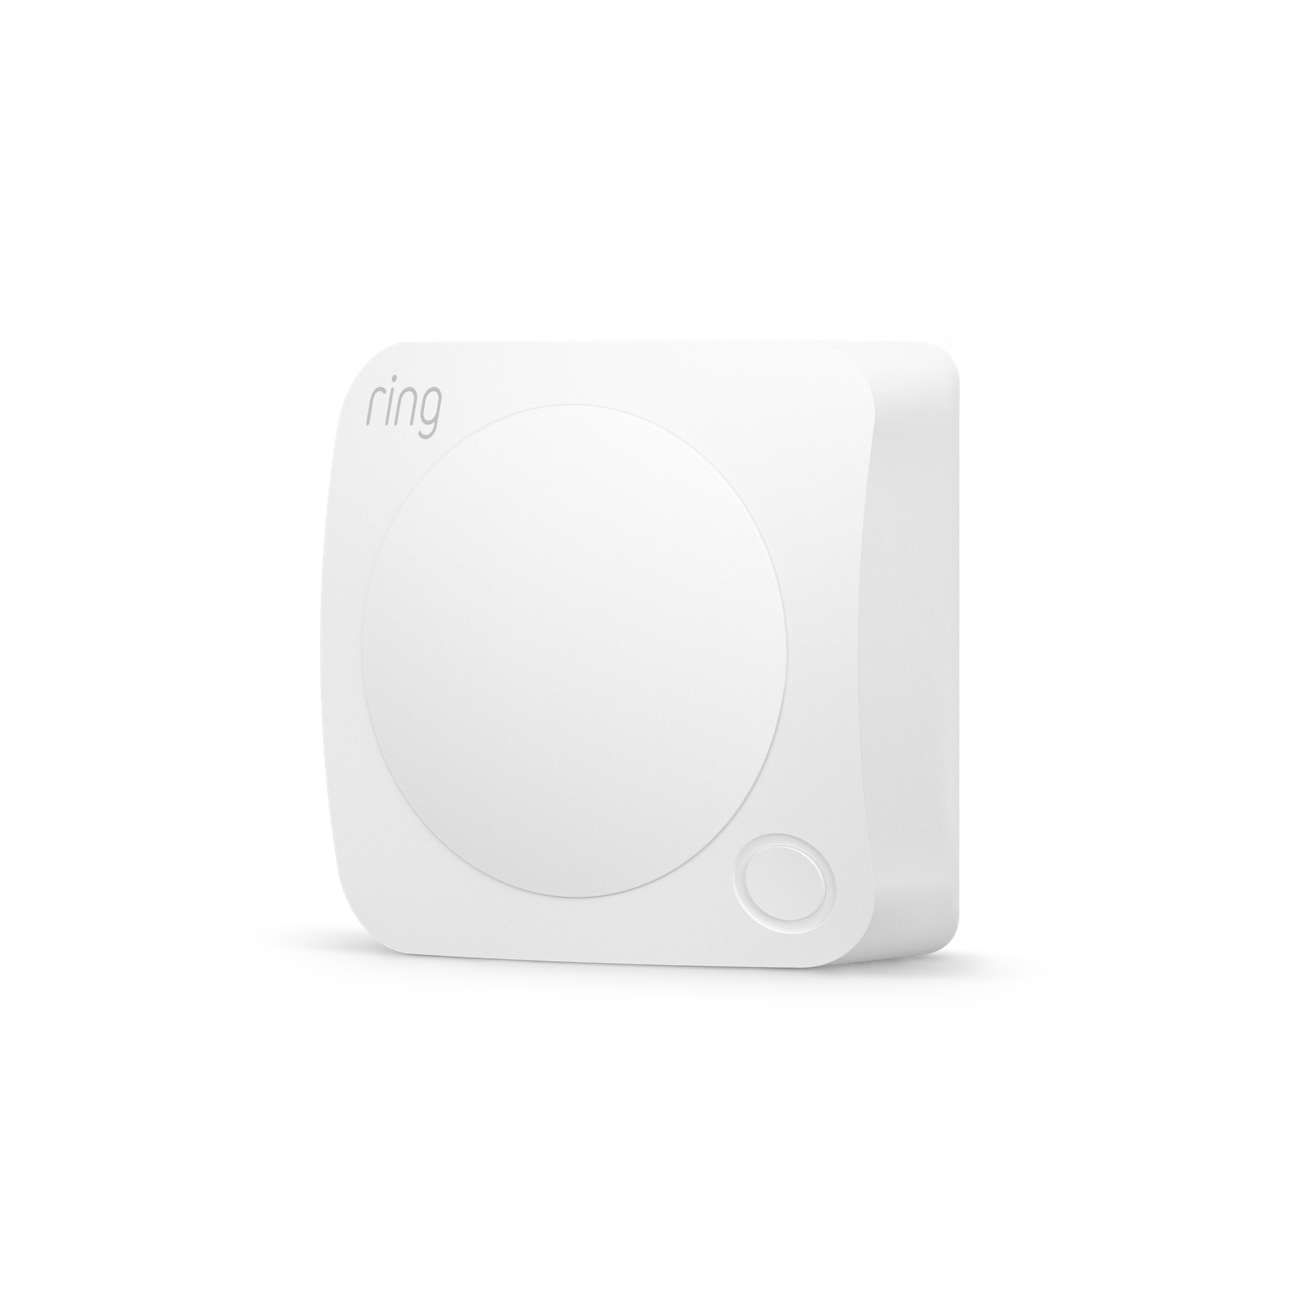 products/Alarm2.0-MotionDetector_angled_1290x1290_68802e41-5348-42db-9730-2a4e0c6df0cd.png